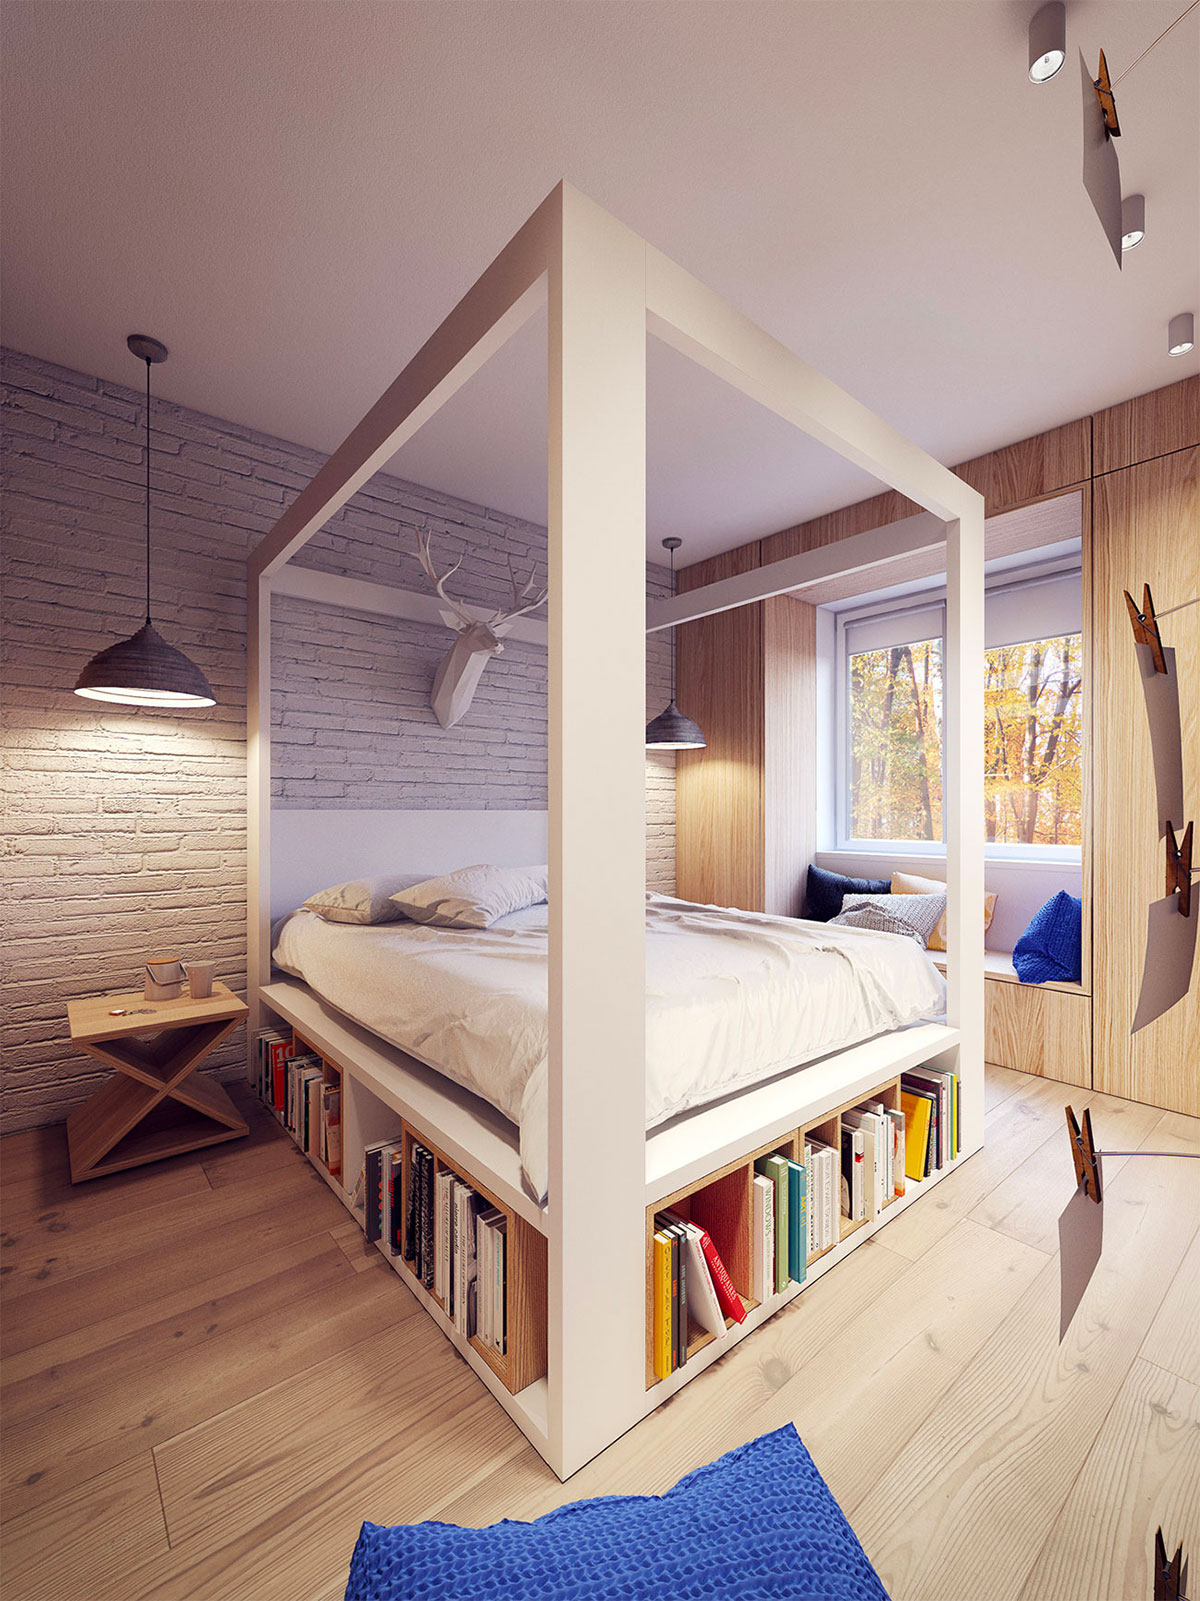 32 Fabulous 4 Poster Beds That Make An Awesome Bedroom